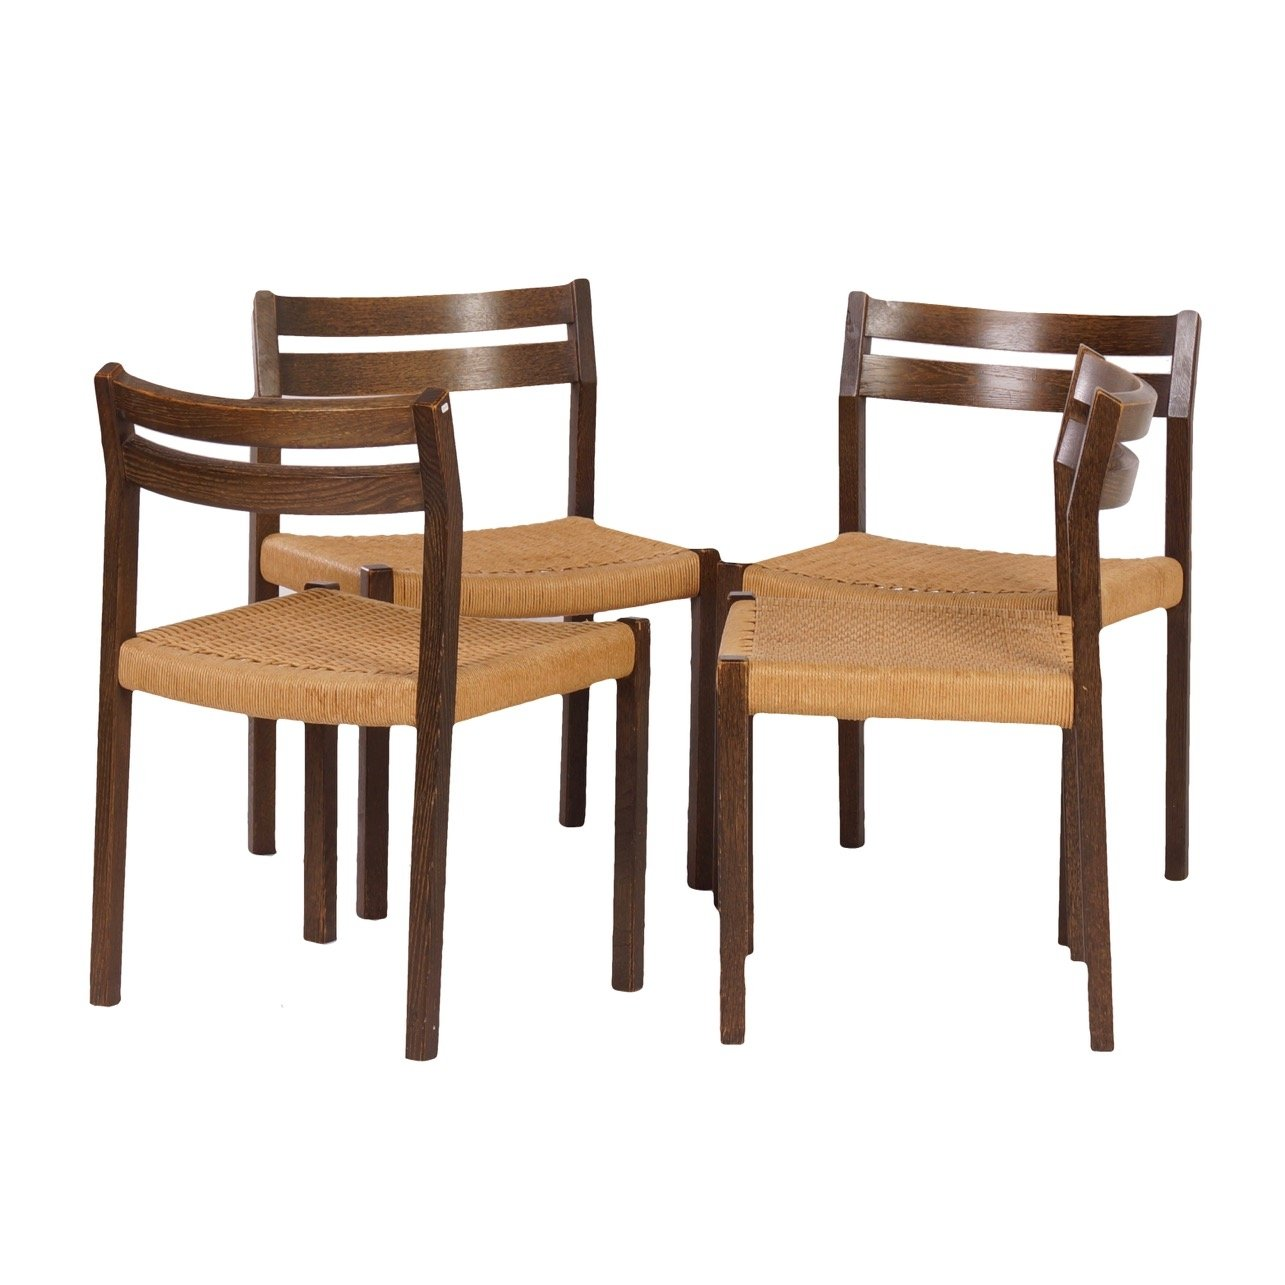 Danish Dining Chairs By Jorgen Henrik Møller For J L 1974